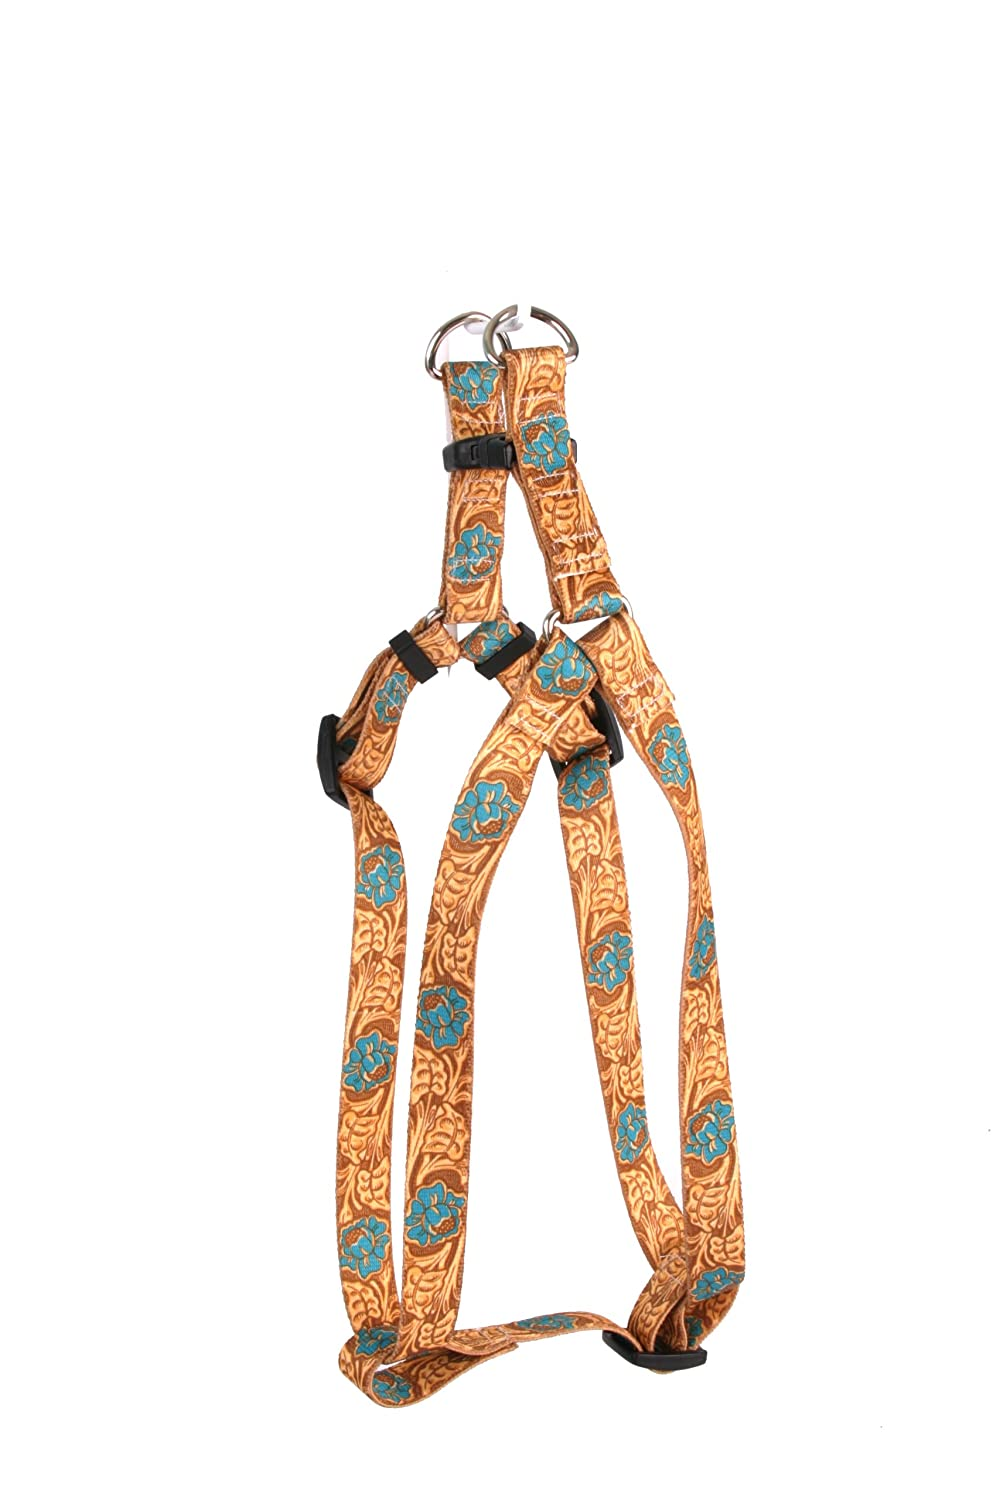 M Yellow Dog Design Step-in Harness, Medium, Leather pink Teal